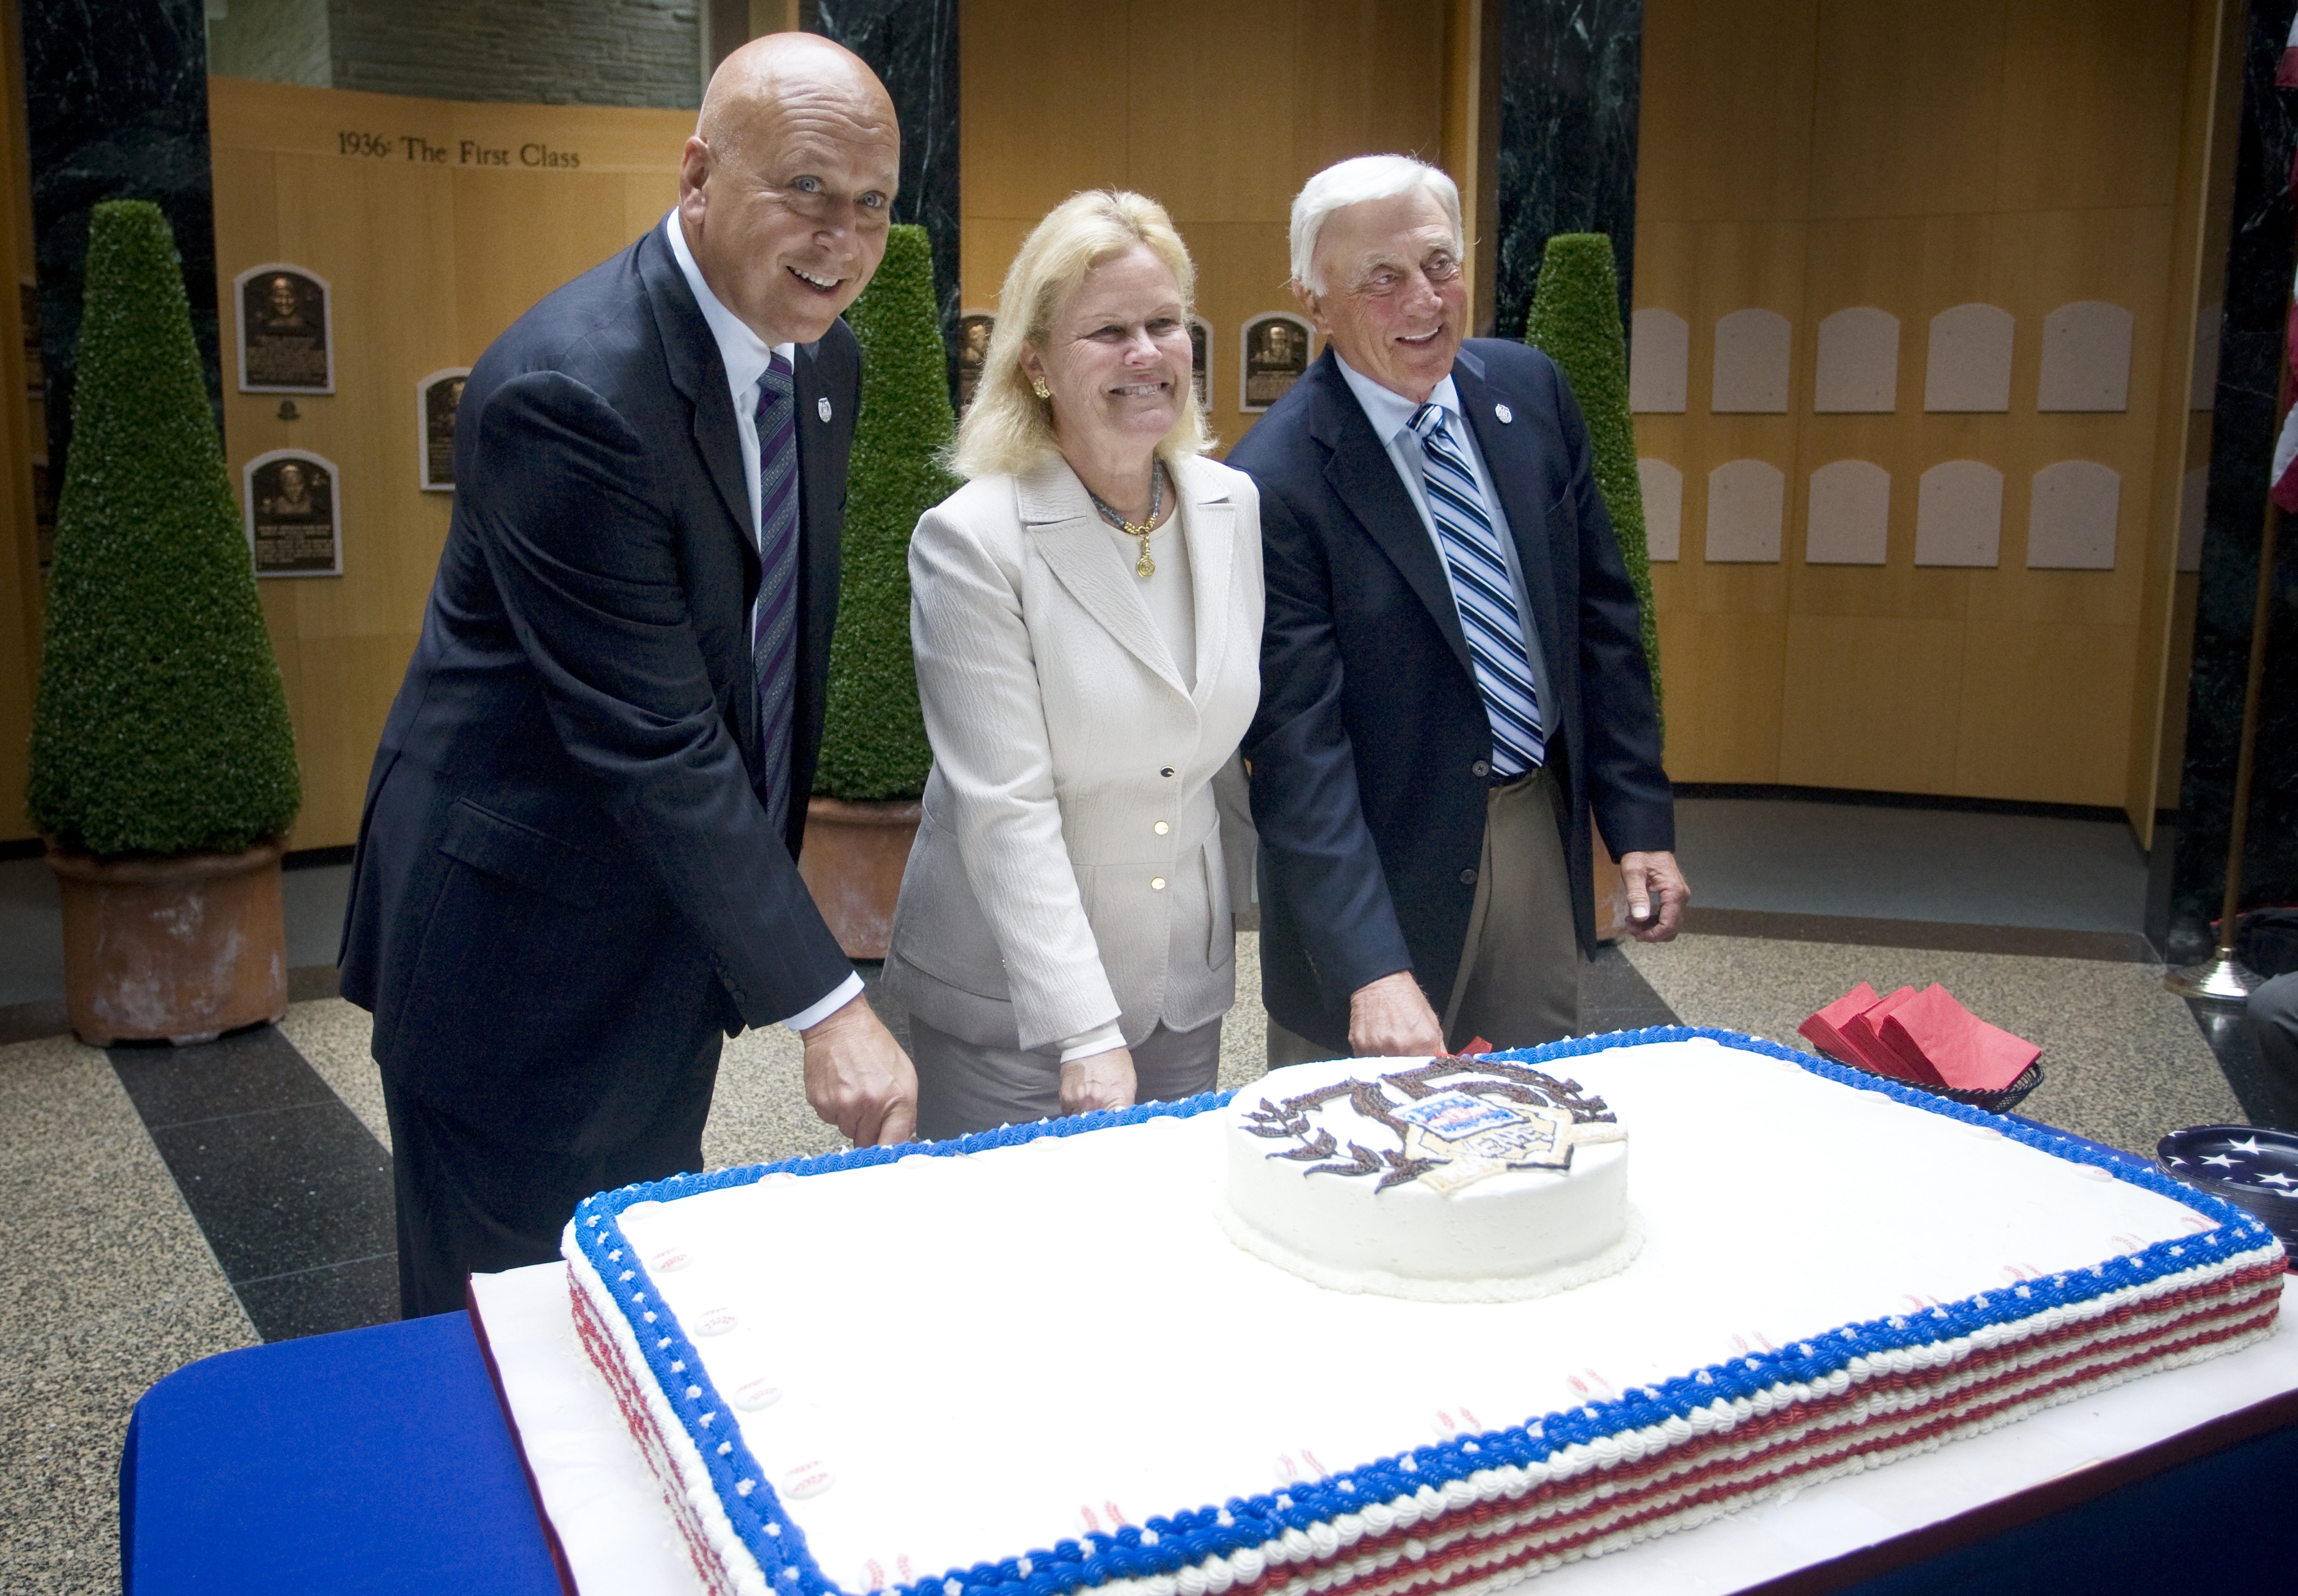 Cal Ripken Jr., left, and Phil Niekro, right, along with Jane Forbes Clark, chairwoman of the board of directors of the National Baseball Hall of Fame and Museum, celebrate the museum's 75th Anniversary.